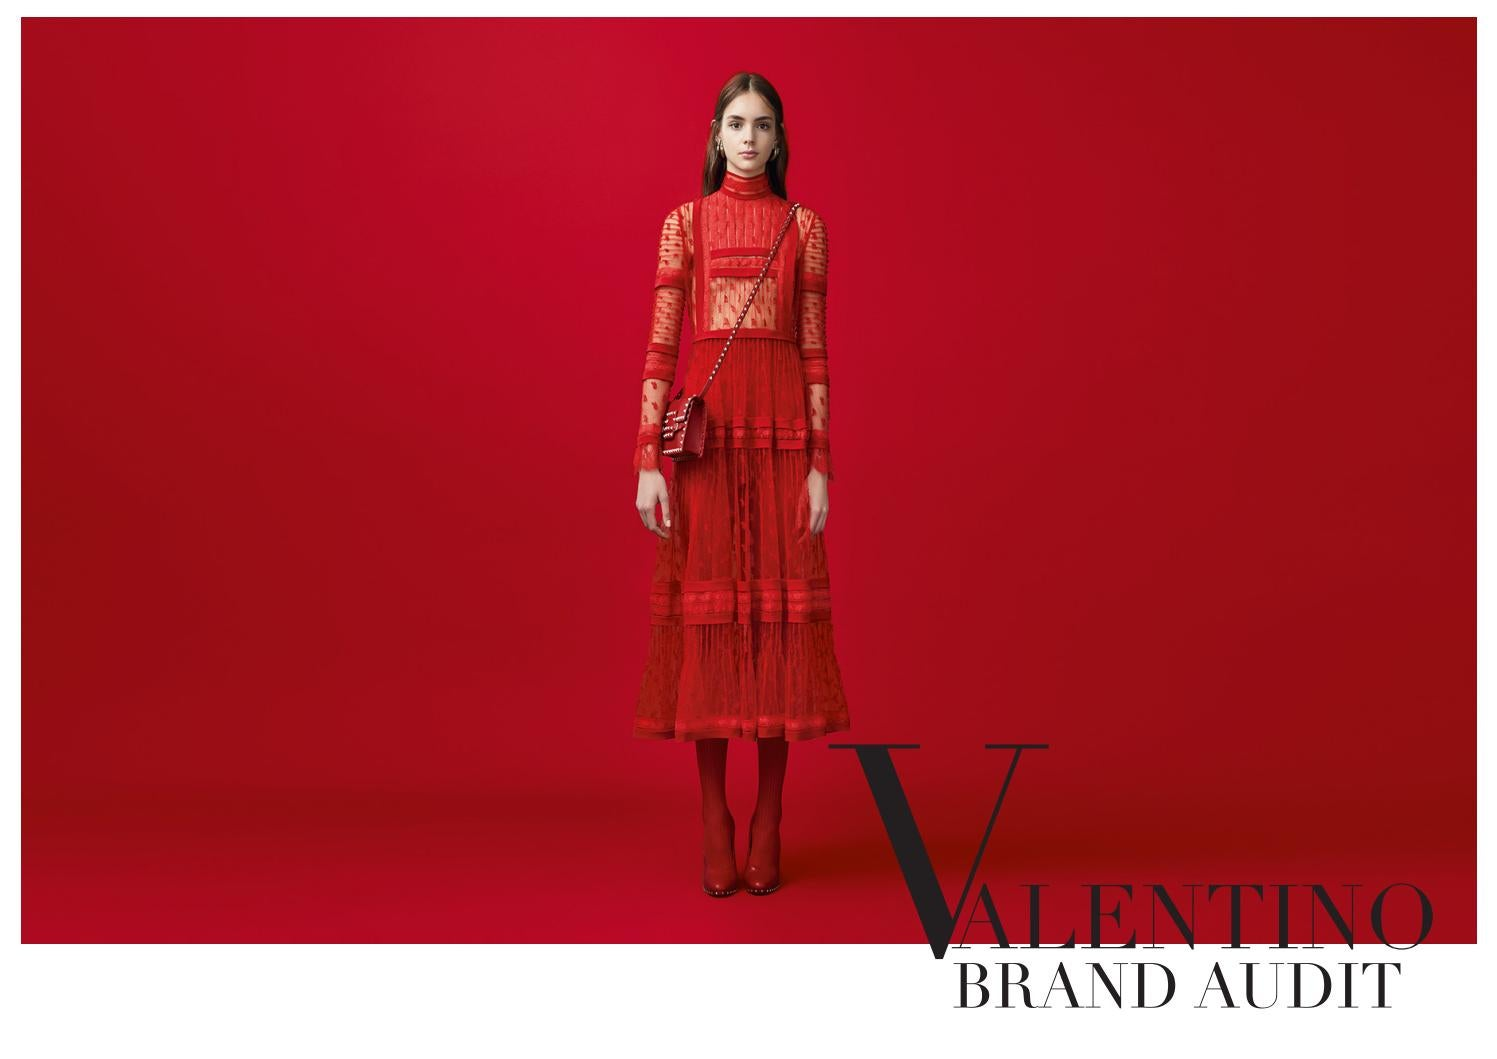 2520516274 Valentino brand report by Lizzie Hayward - issuu